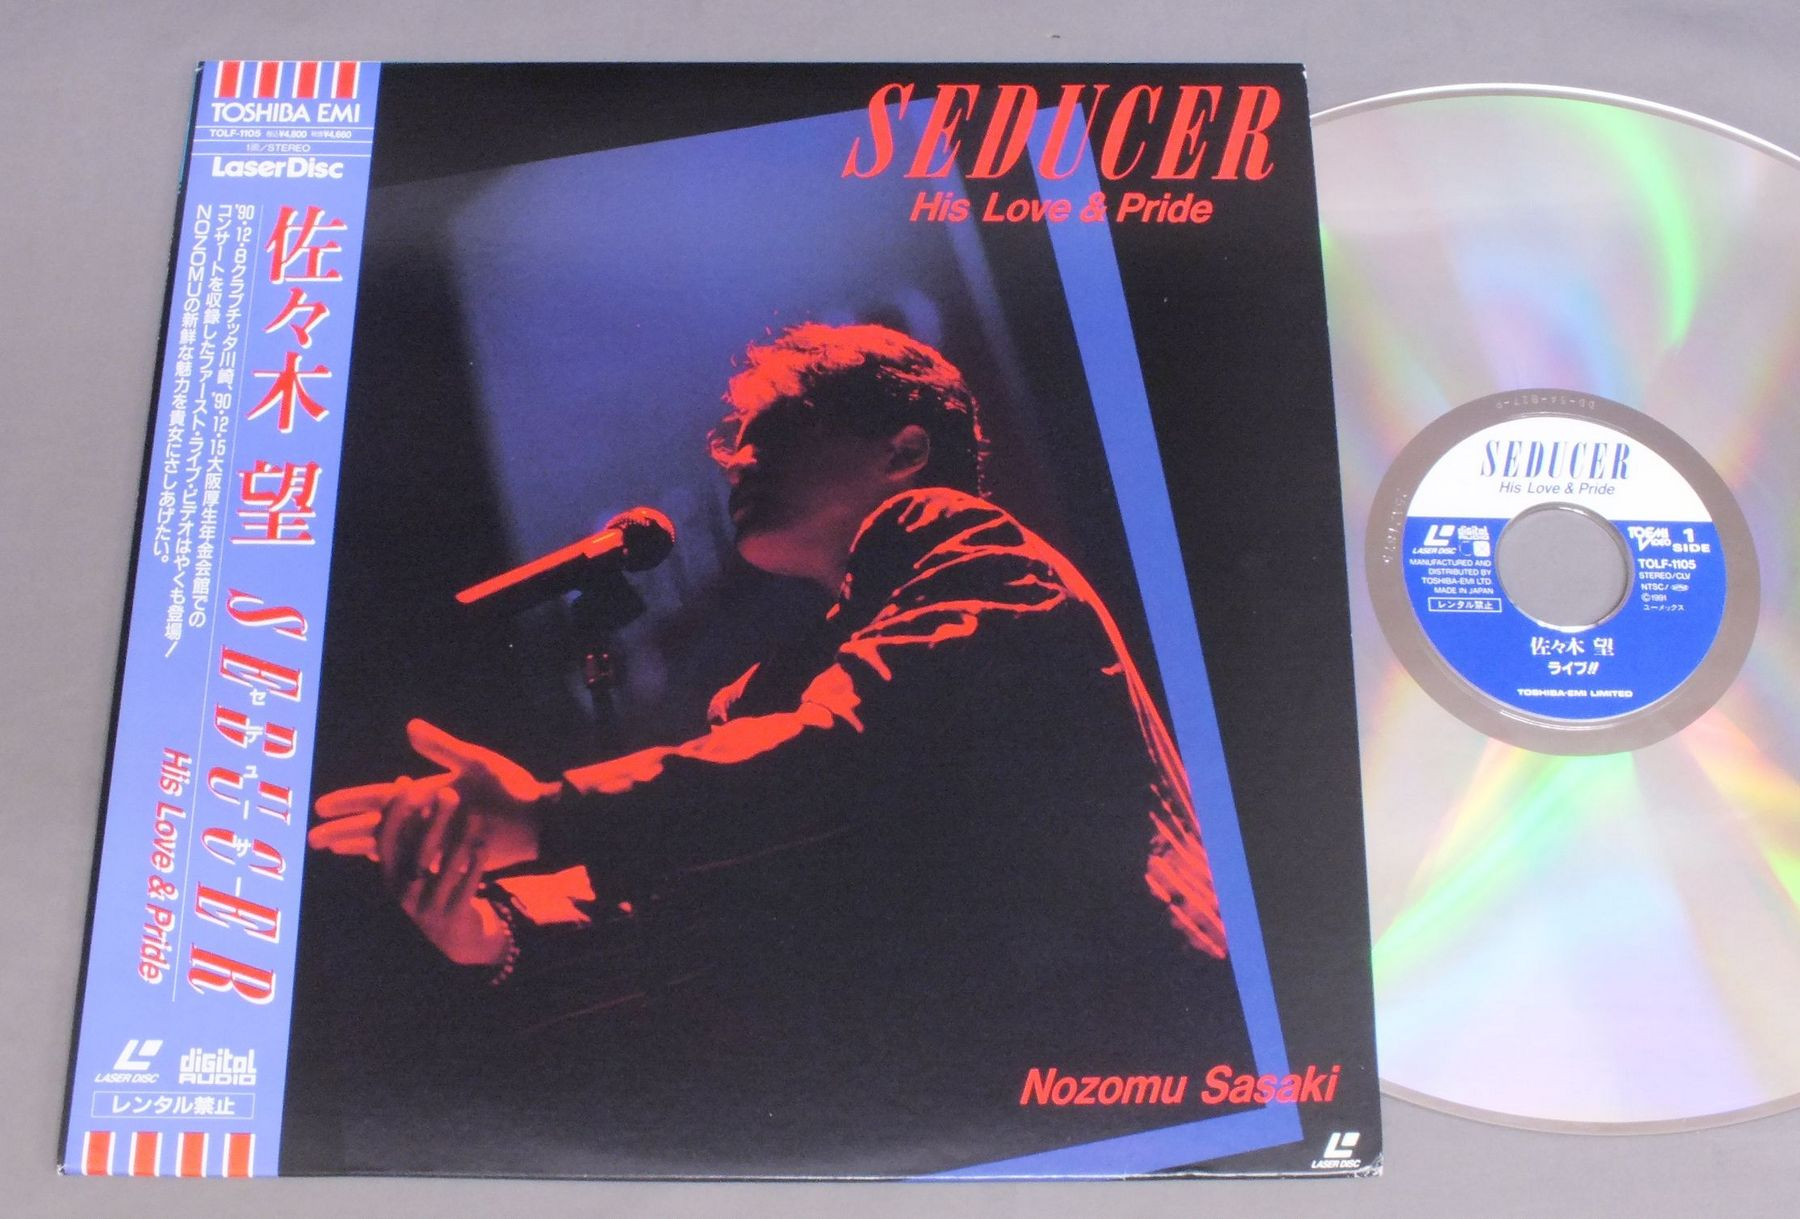 NOZOMU SASAKI - SEDUCER HIS LOVE & PRIDE LIVE 1990 DEC - Laser Disc